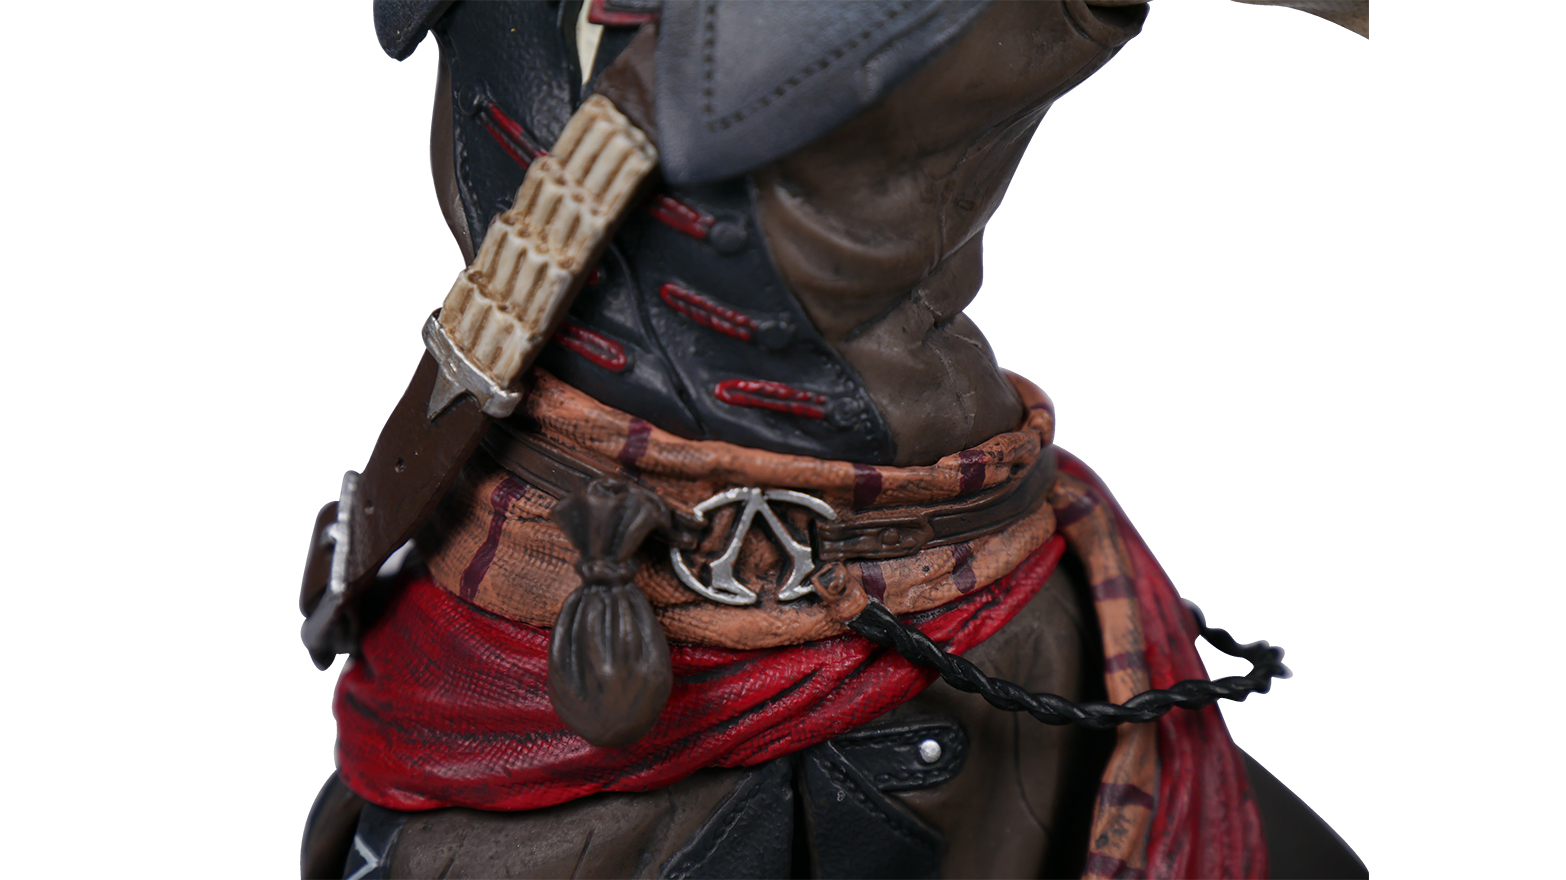 Assassin's Creed Liberation - The Assassin of New Orleans Ubi-Aveline-03